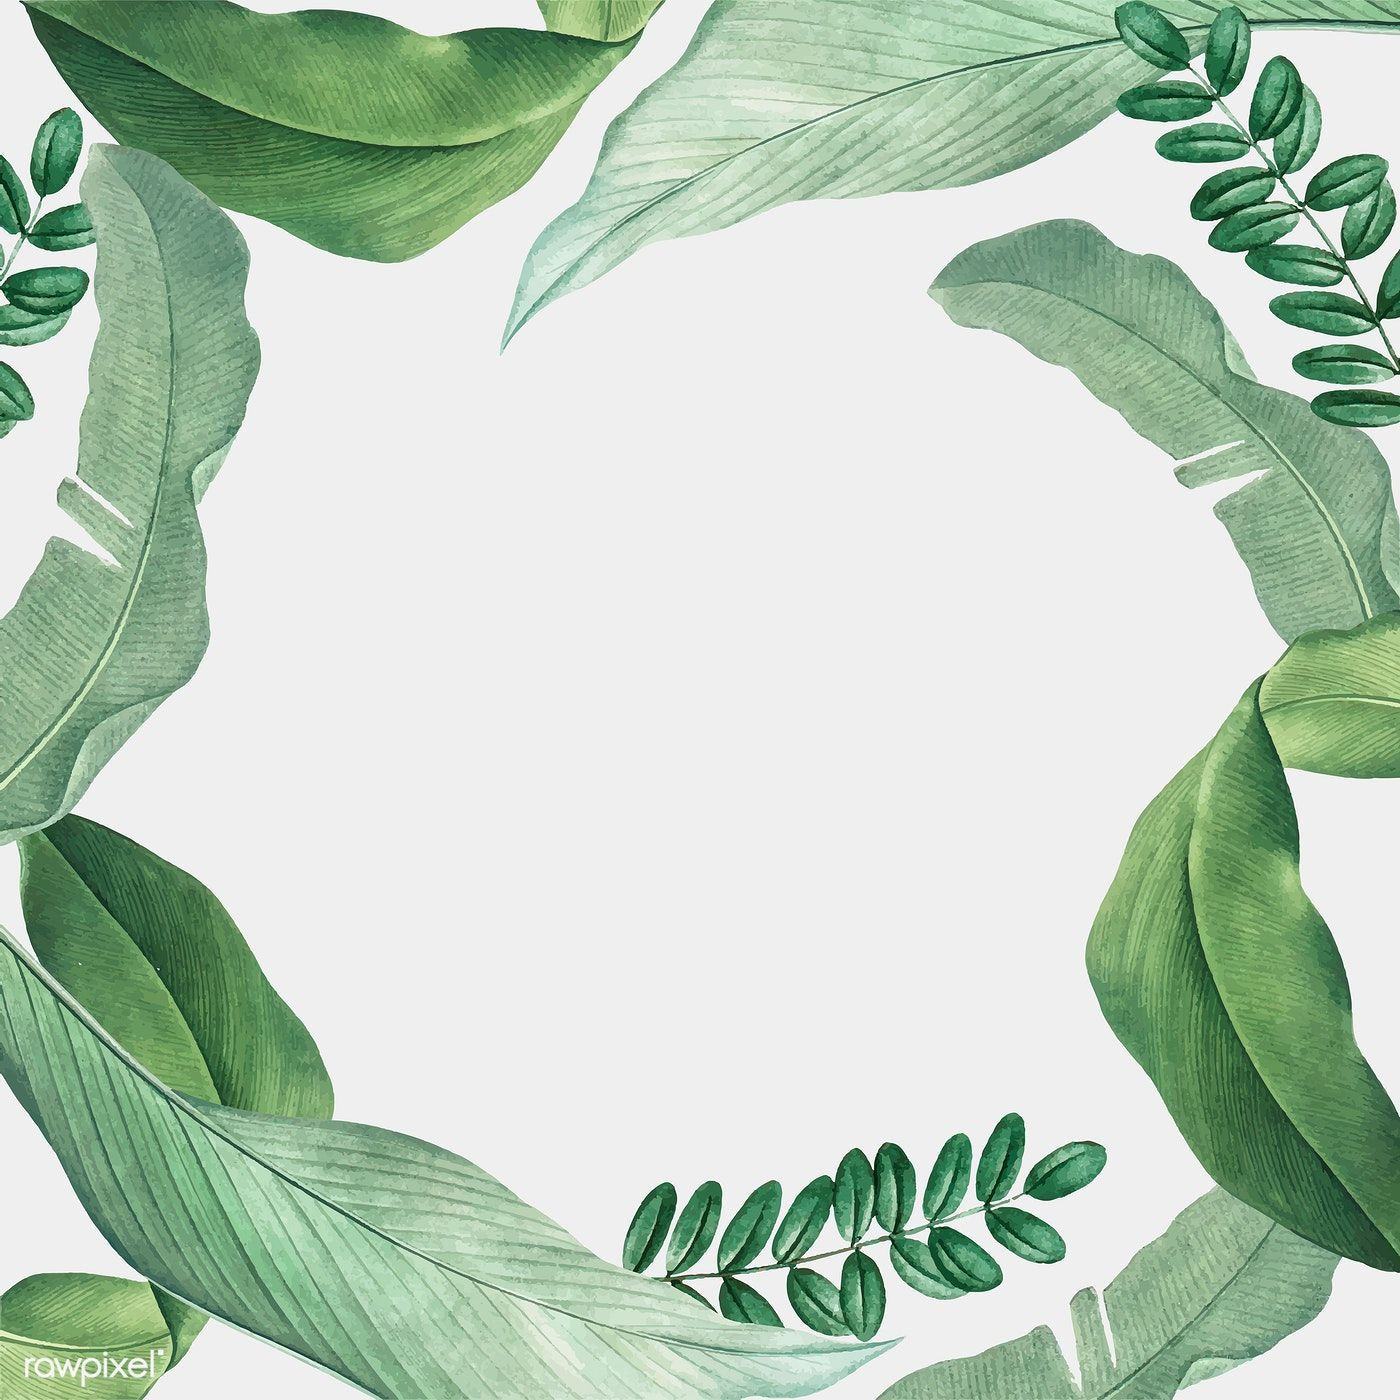 Download Premium Vector Of Hand Drawn Tropical Leaves Frame On A White Leaf Background Tropical Leaves Tropical Ferns, rubber fig trees and areca palms make the perfect houseplants. hand drawn tropical leaves frame